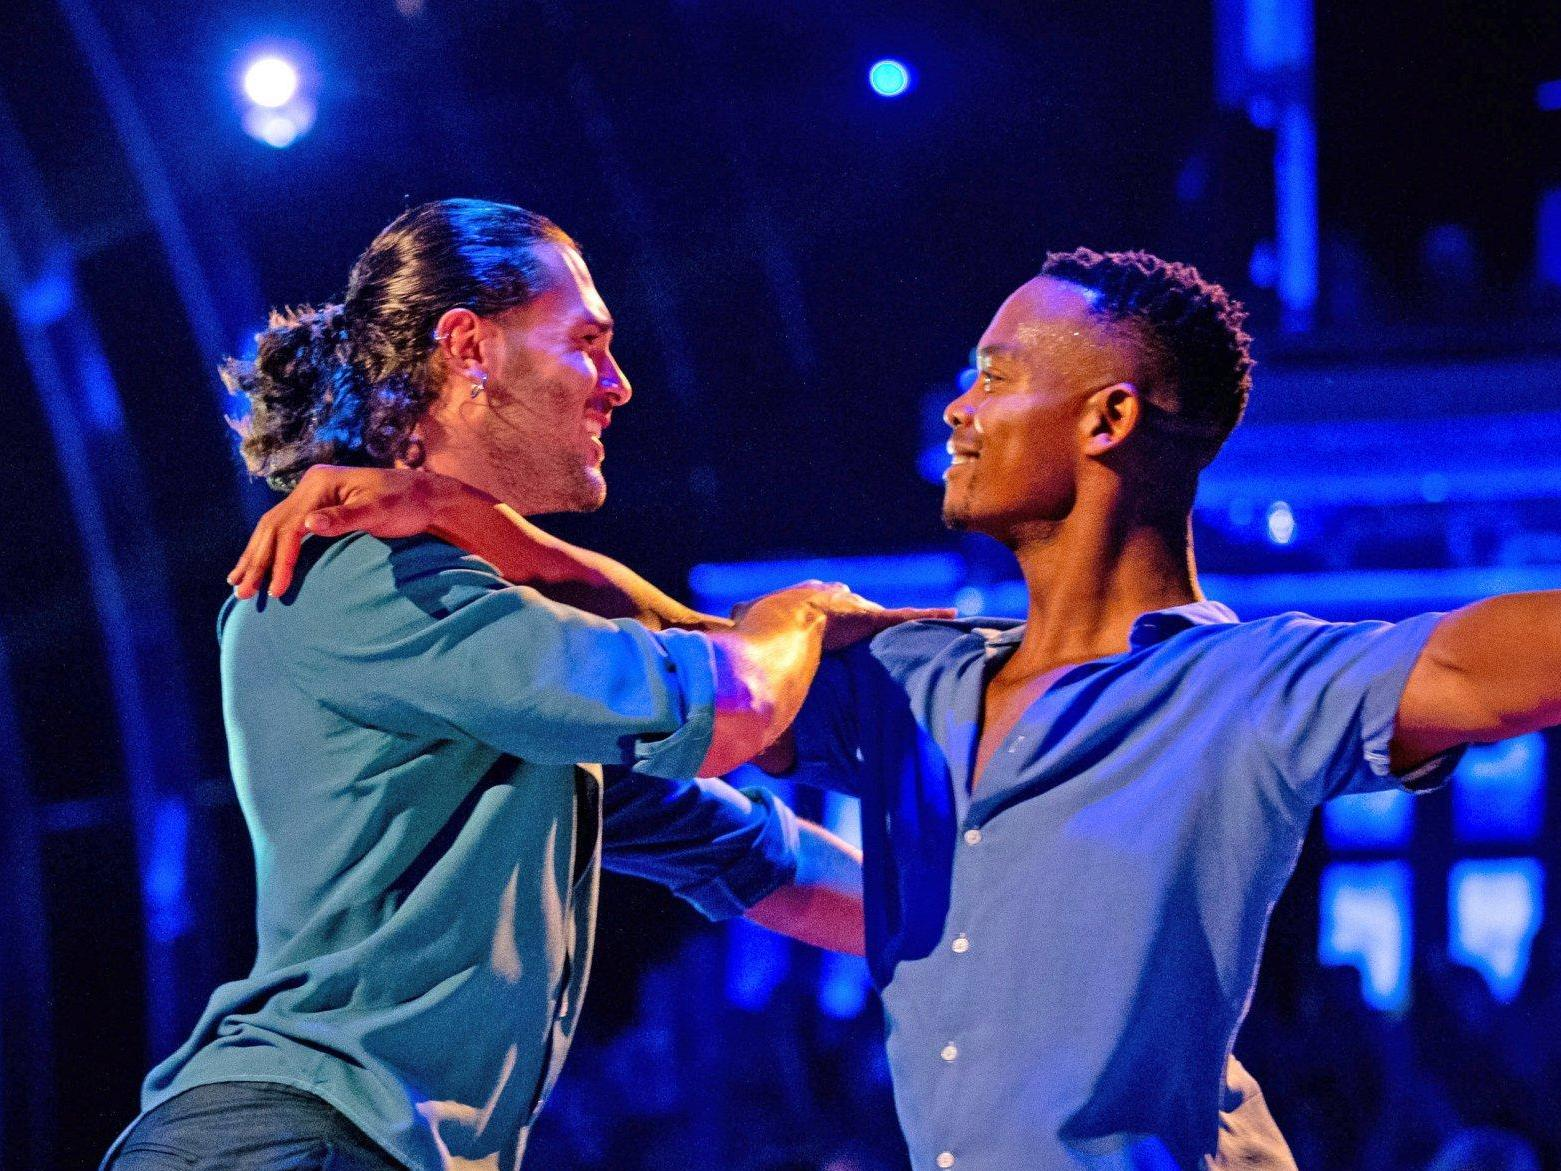 Strictly Come Dancing: Almost 200 people complain about first same-sex routine